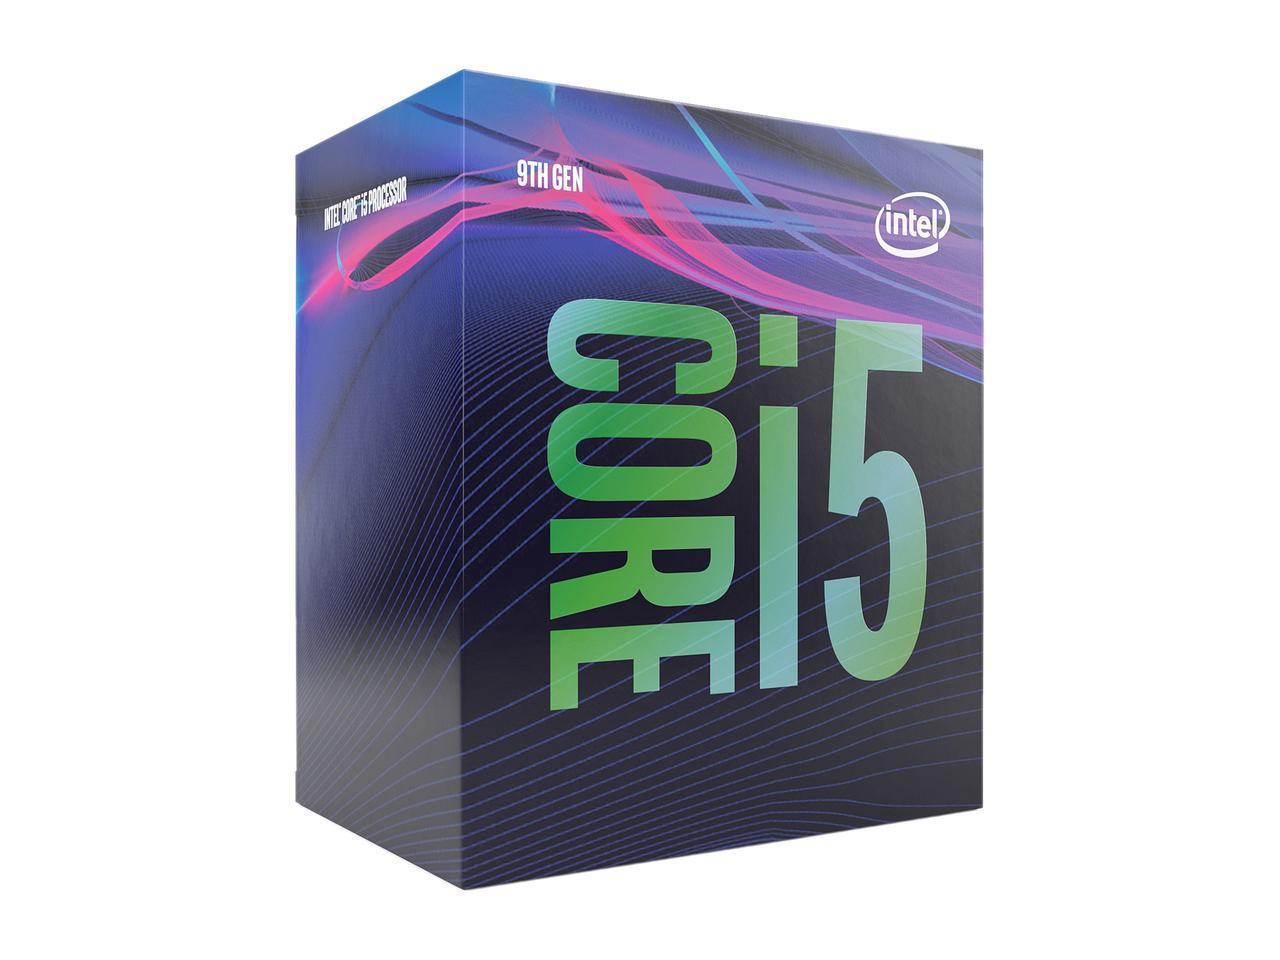 Процесор Intel Coffee Lake Core i5-9400 2.9GHz (up to 4.10GHz ), 9MB, 65W LGA1151 (300 Series)-3